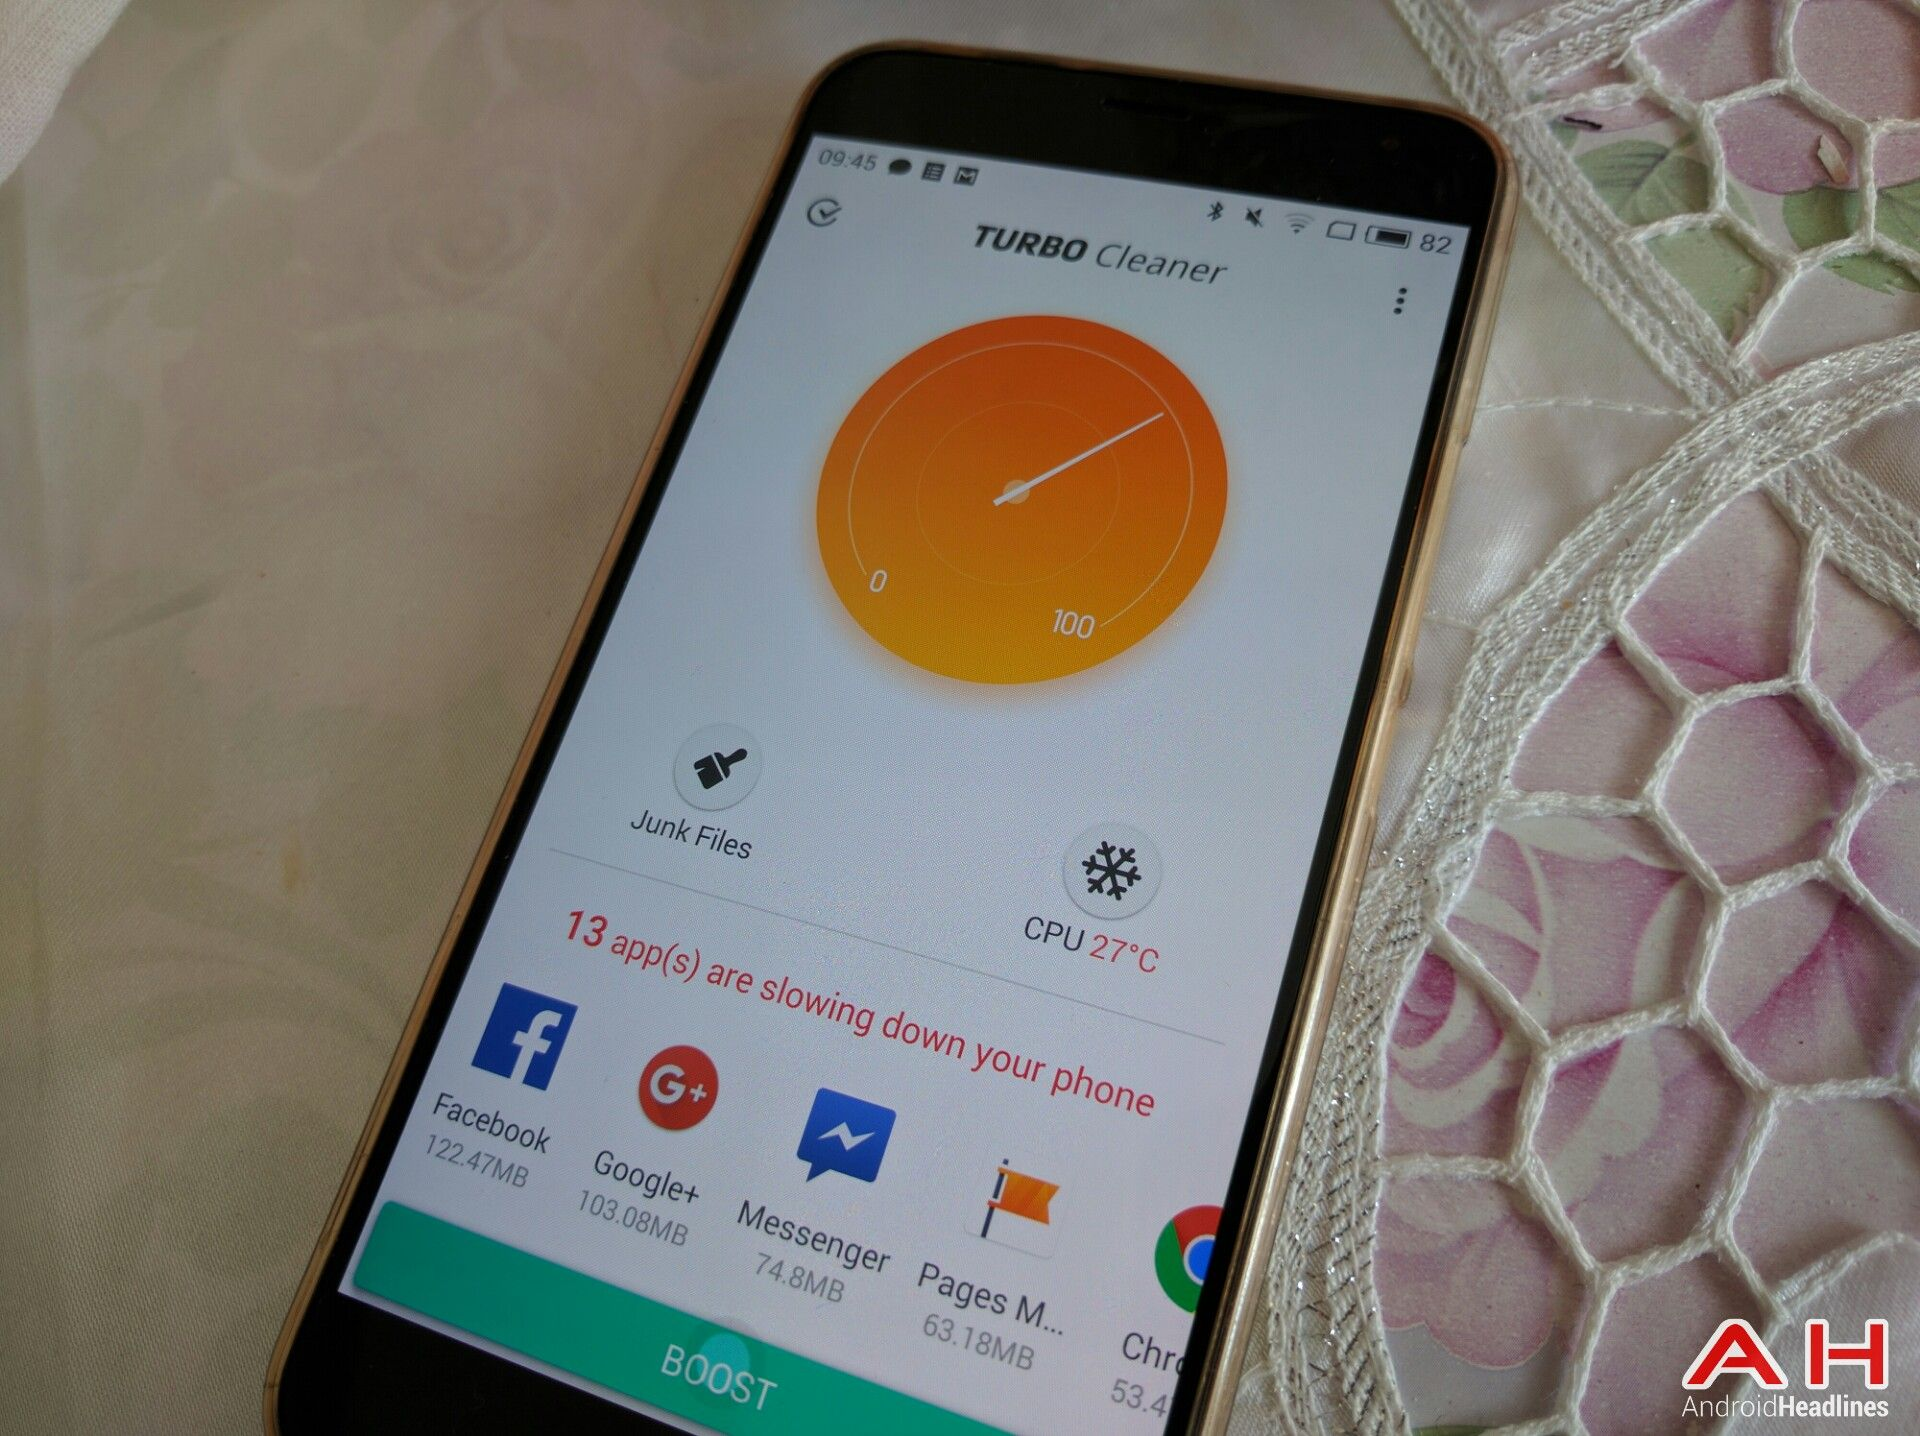 Turbo Cleaner App Will Help You Clean & Boost Your Device #Android #CES2016 #Google